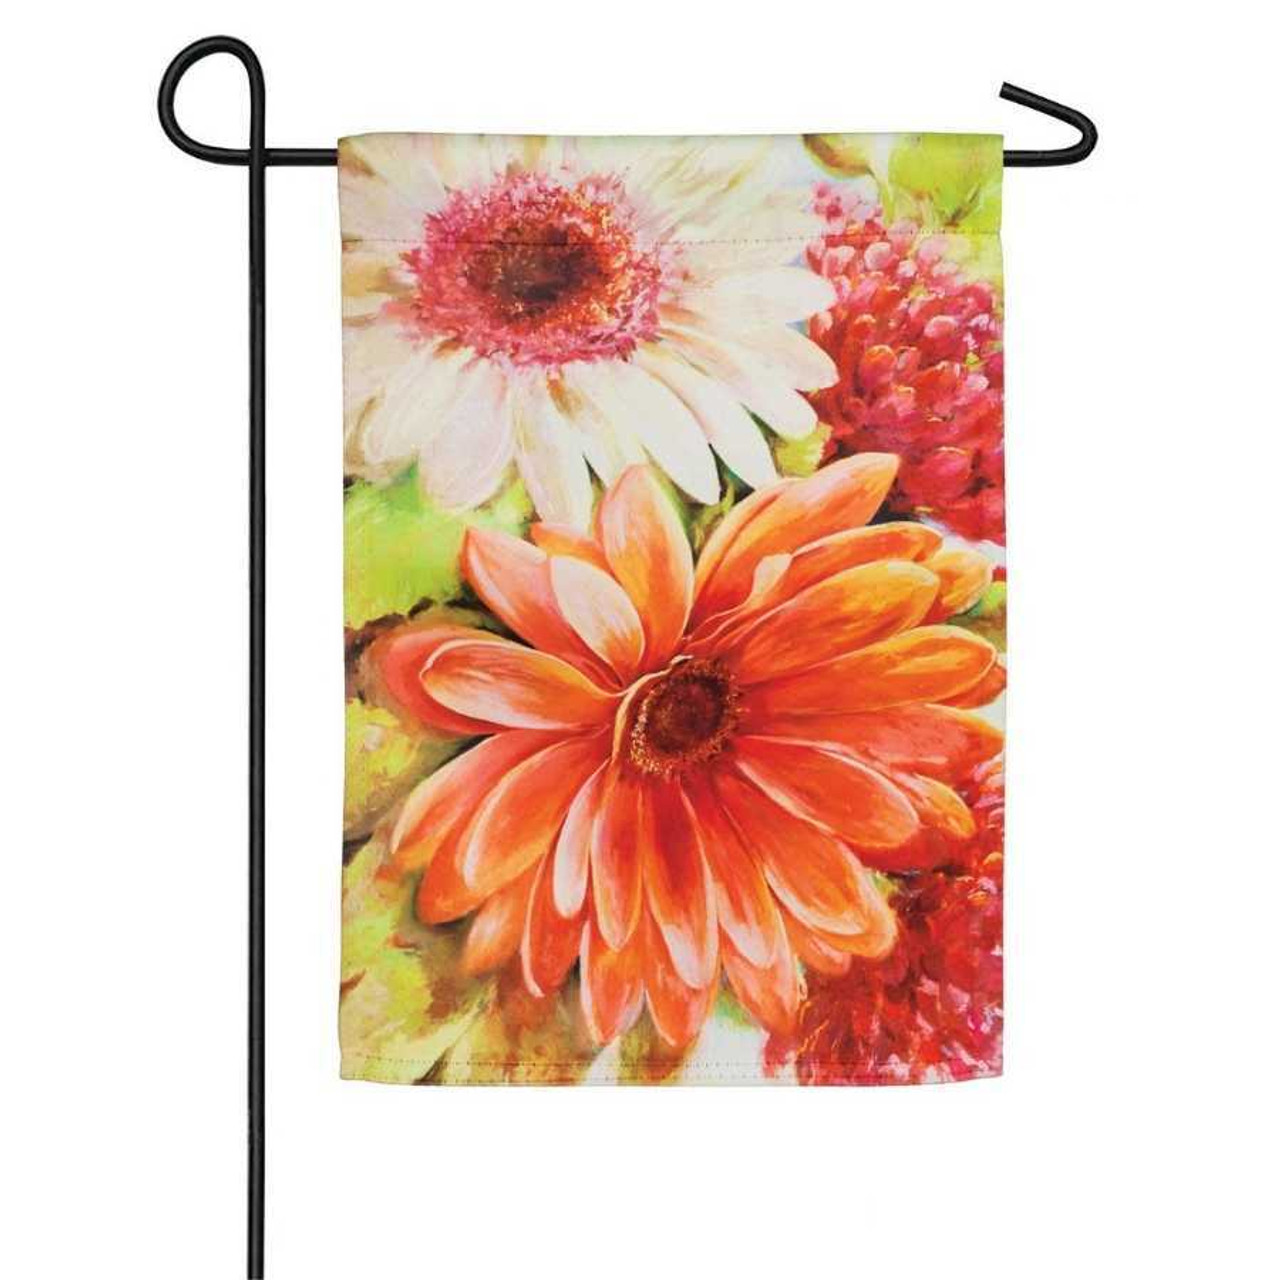 A garden flag featuring a close up of orange, yellow, green, and red flowers.